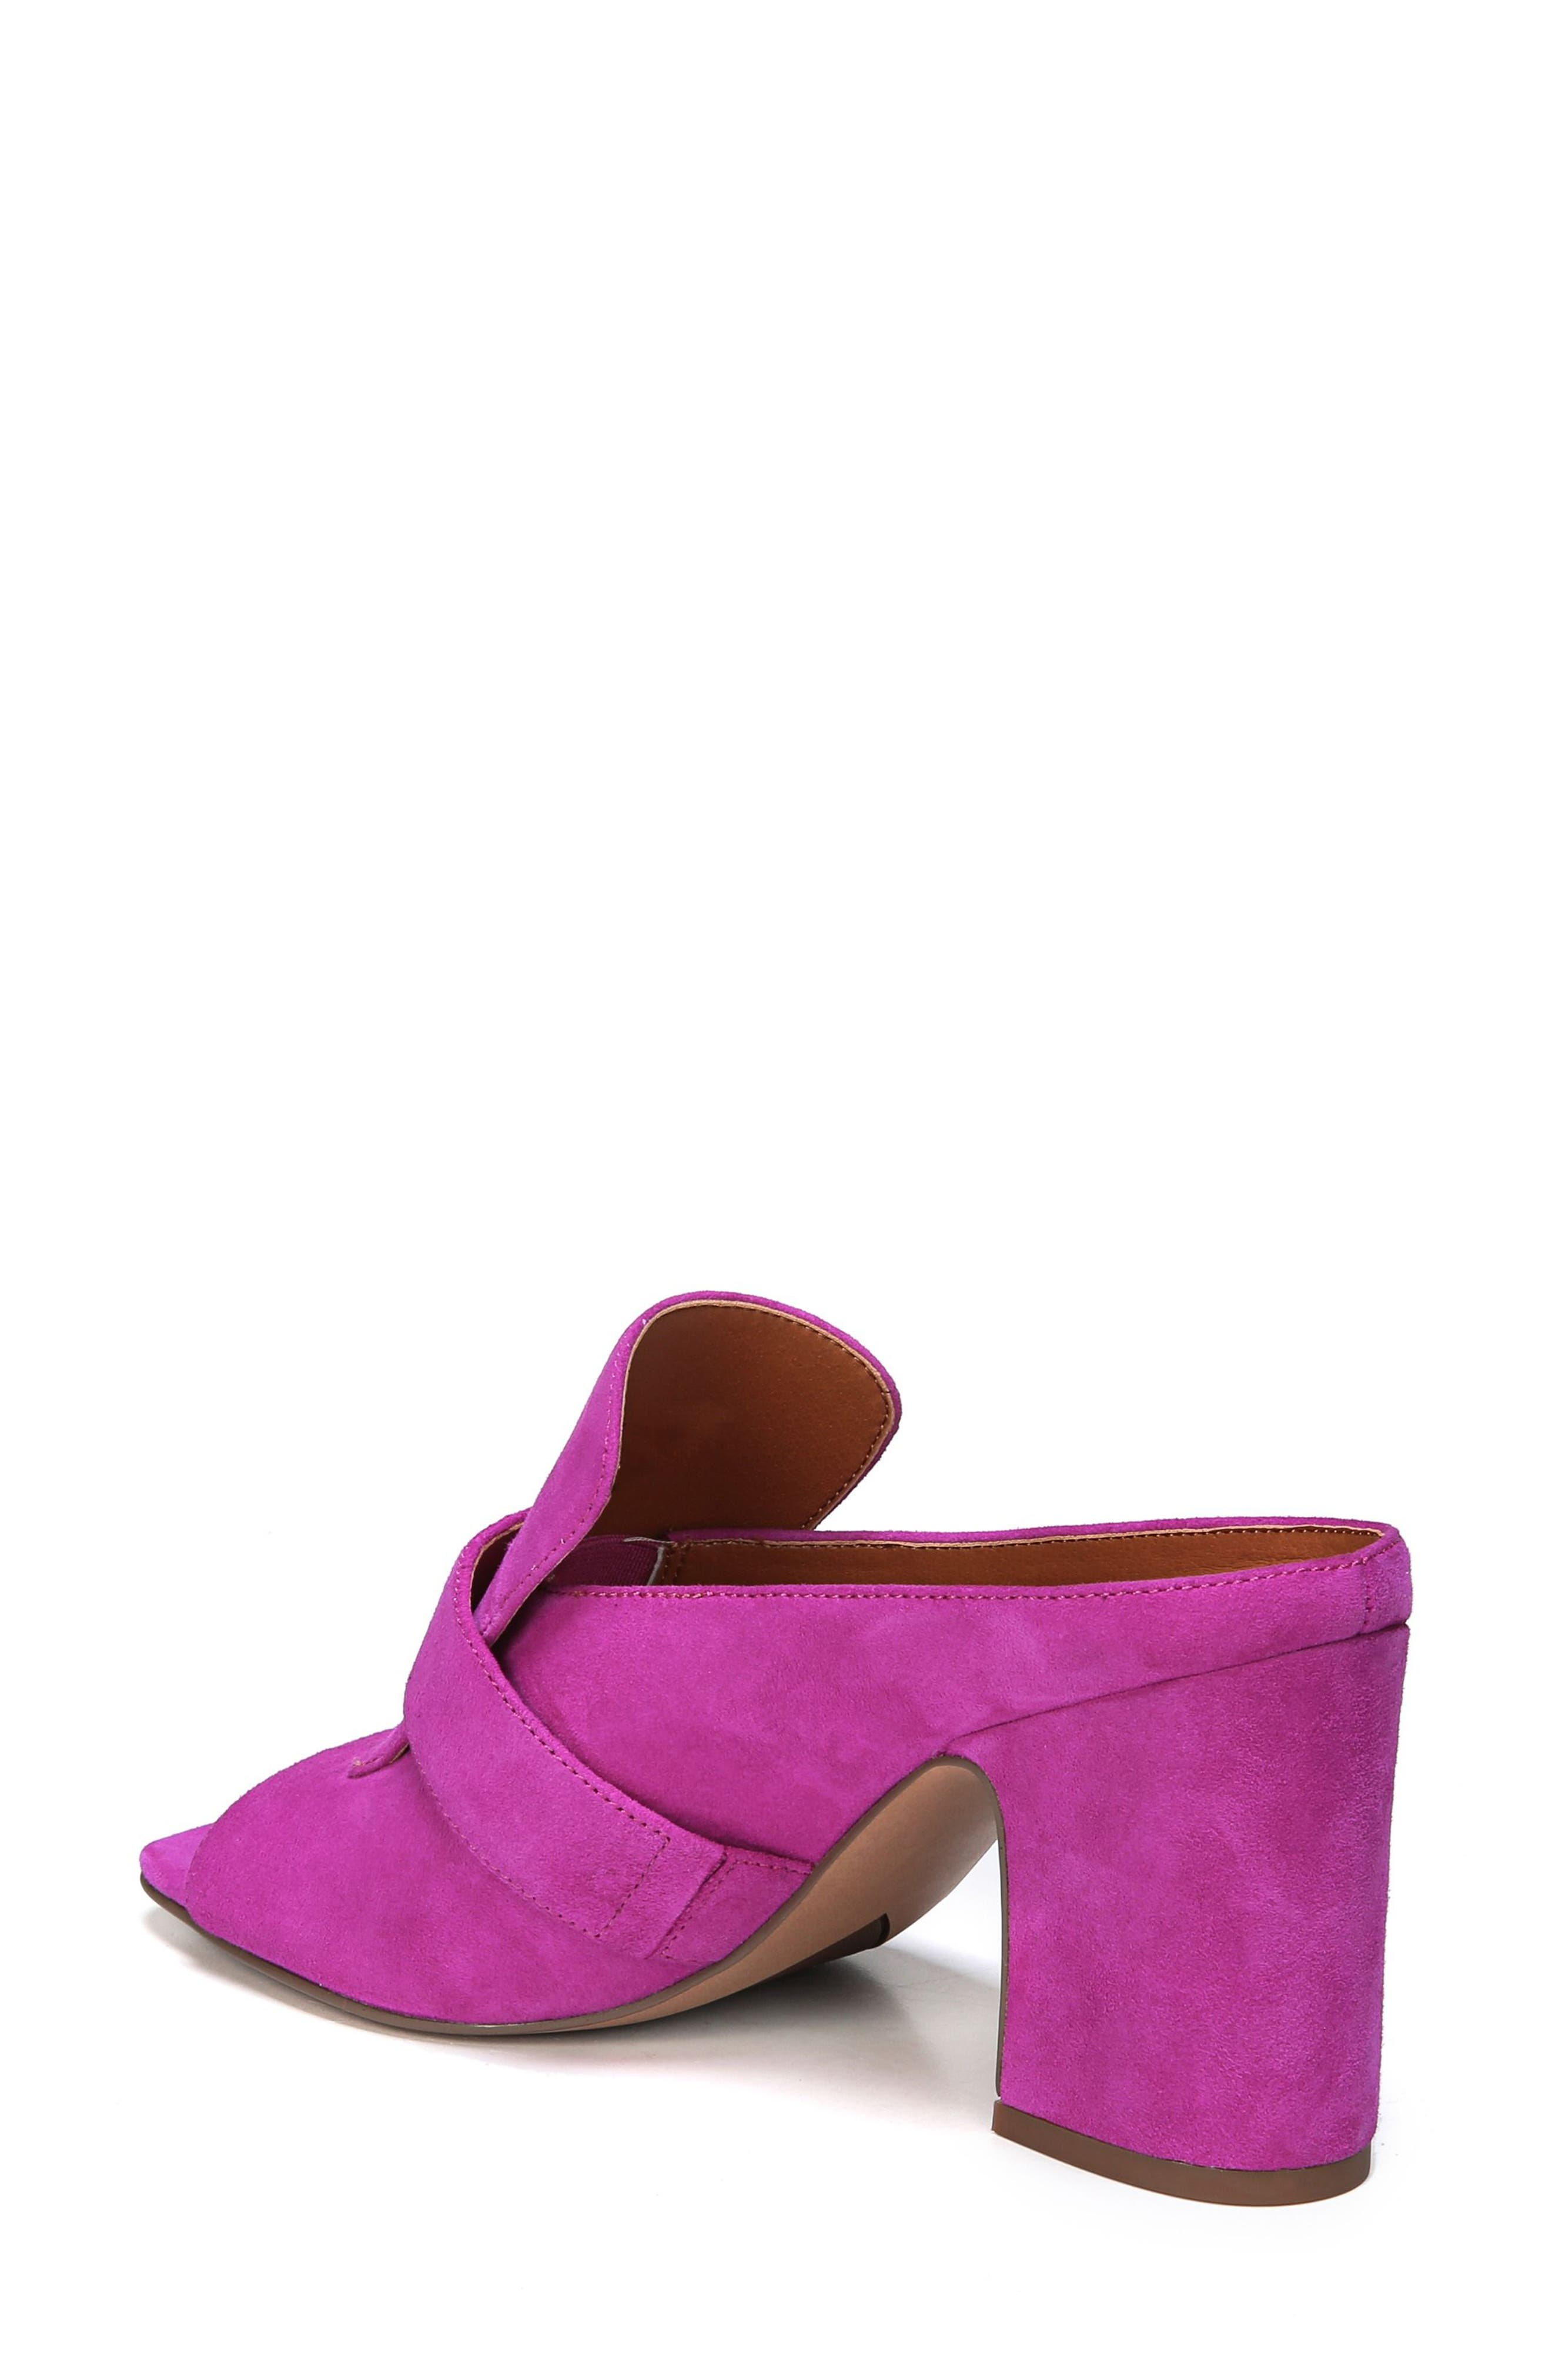 Rosalie Block Heel Sandal,                             Alternate thumbnail 2, color,                             Wild Violet Suede